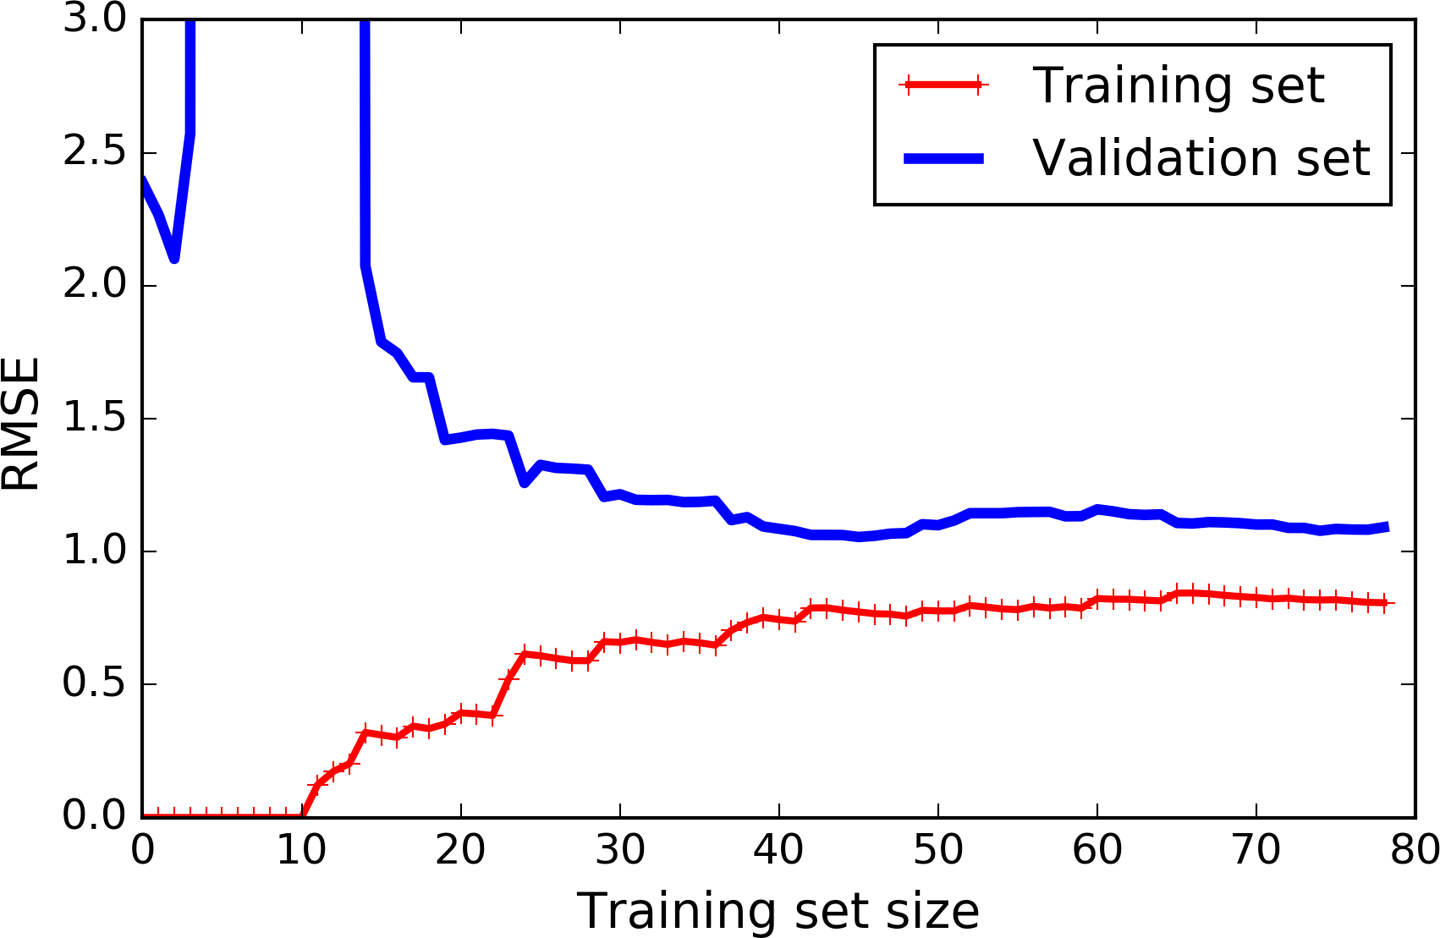 4  Training Models - Hands-On Machine Learning with Scikit